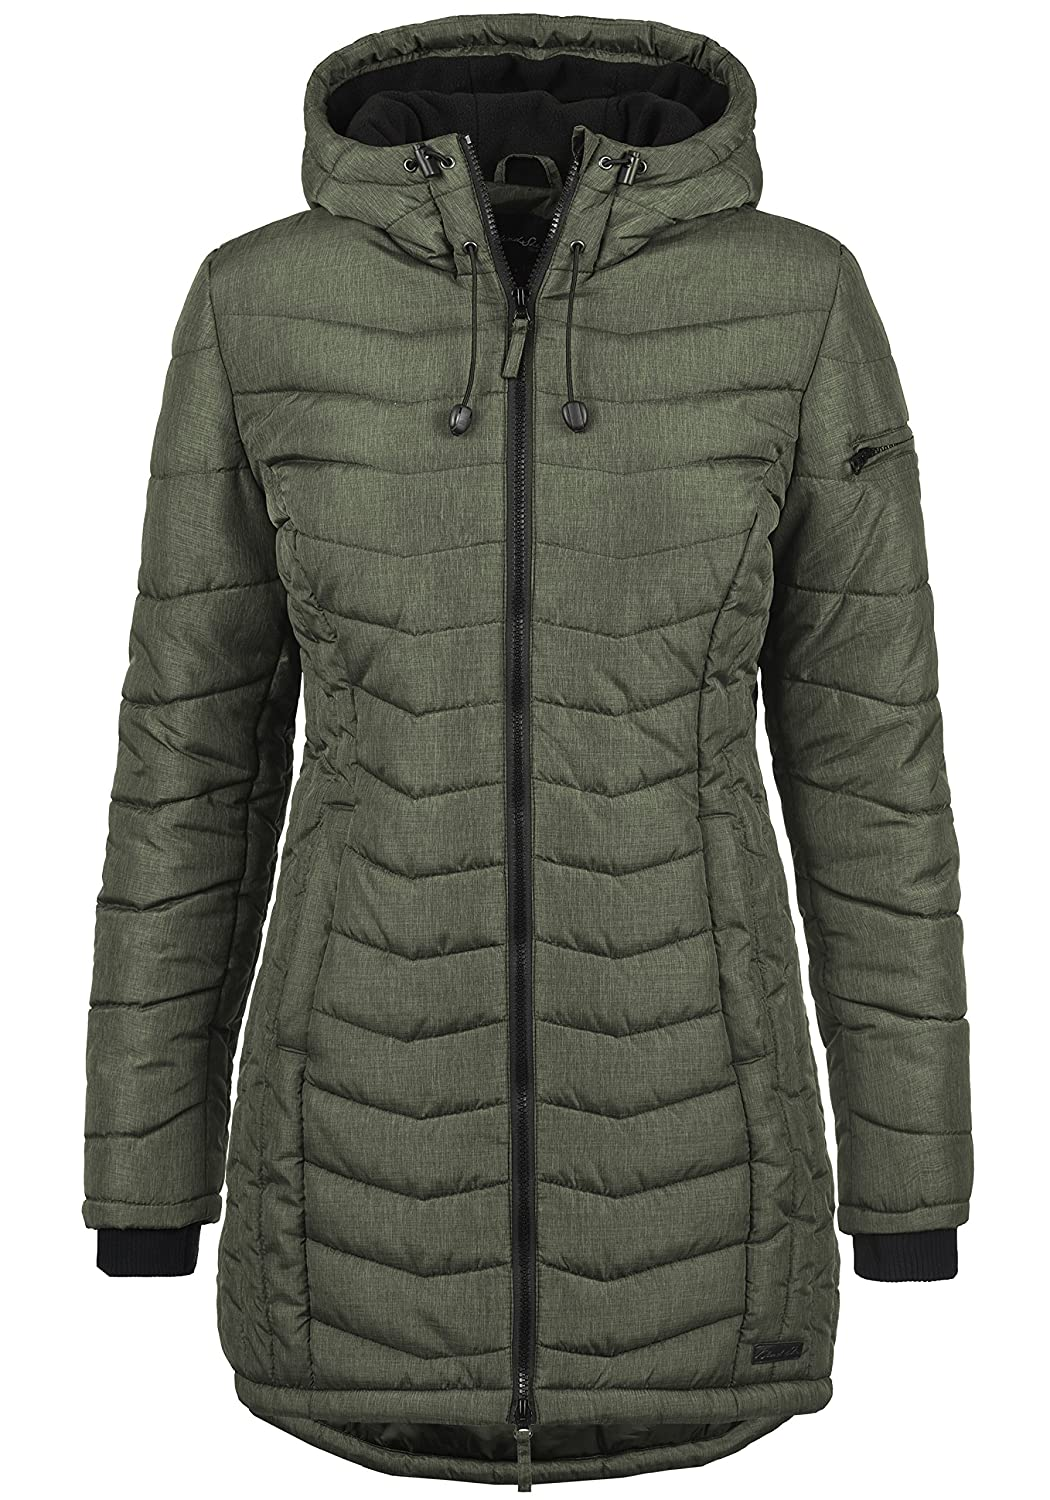 BlendShe Nelly Women's Quilted Coat Parka Outdoor Jacket with Hood